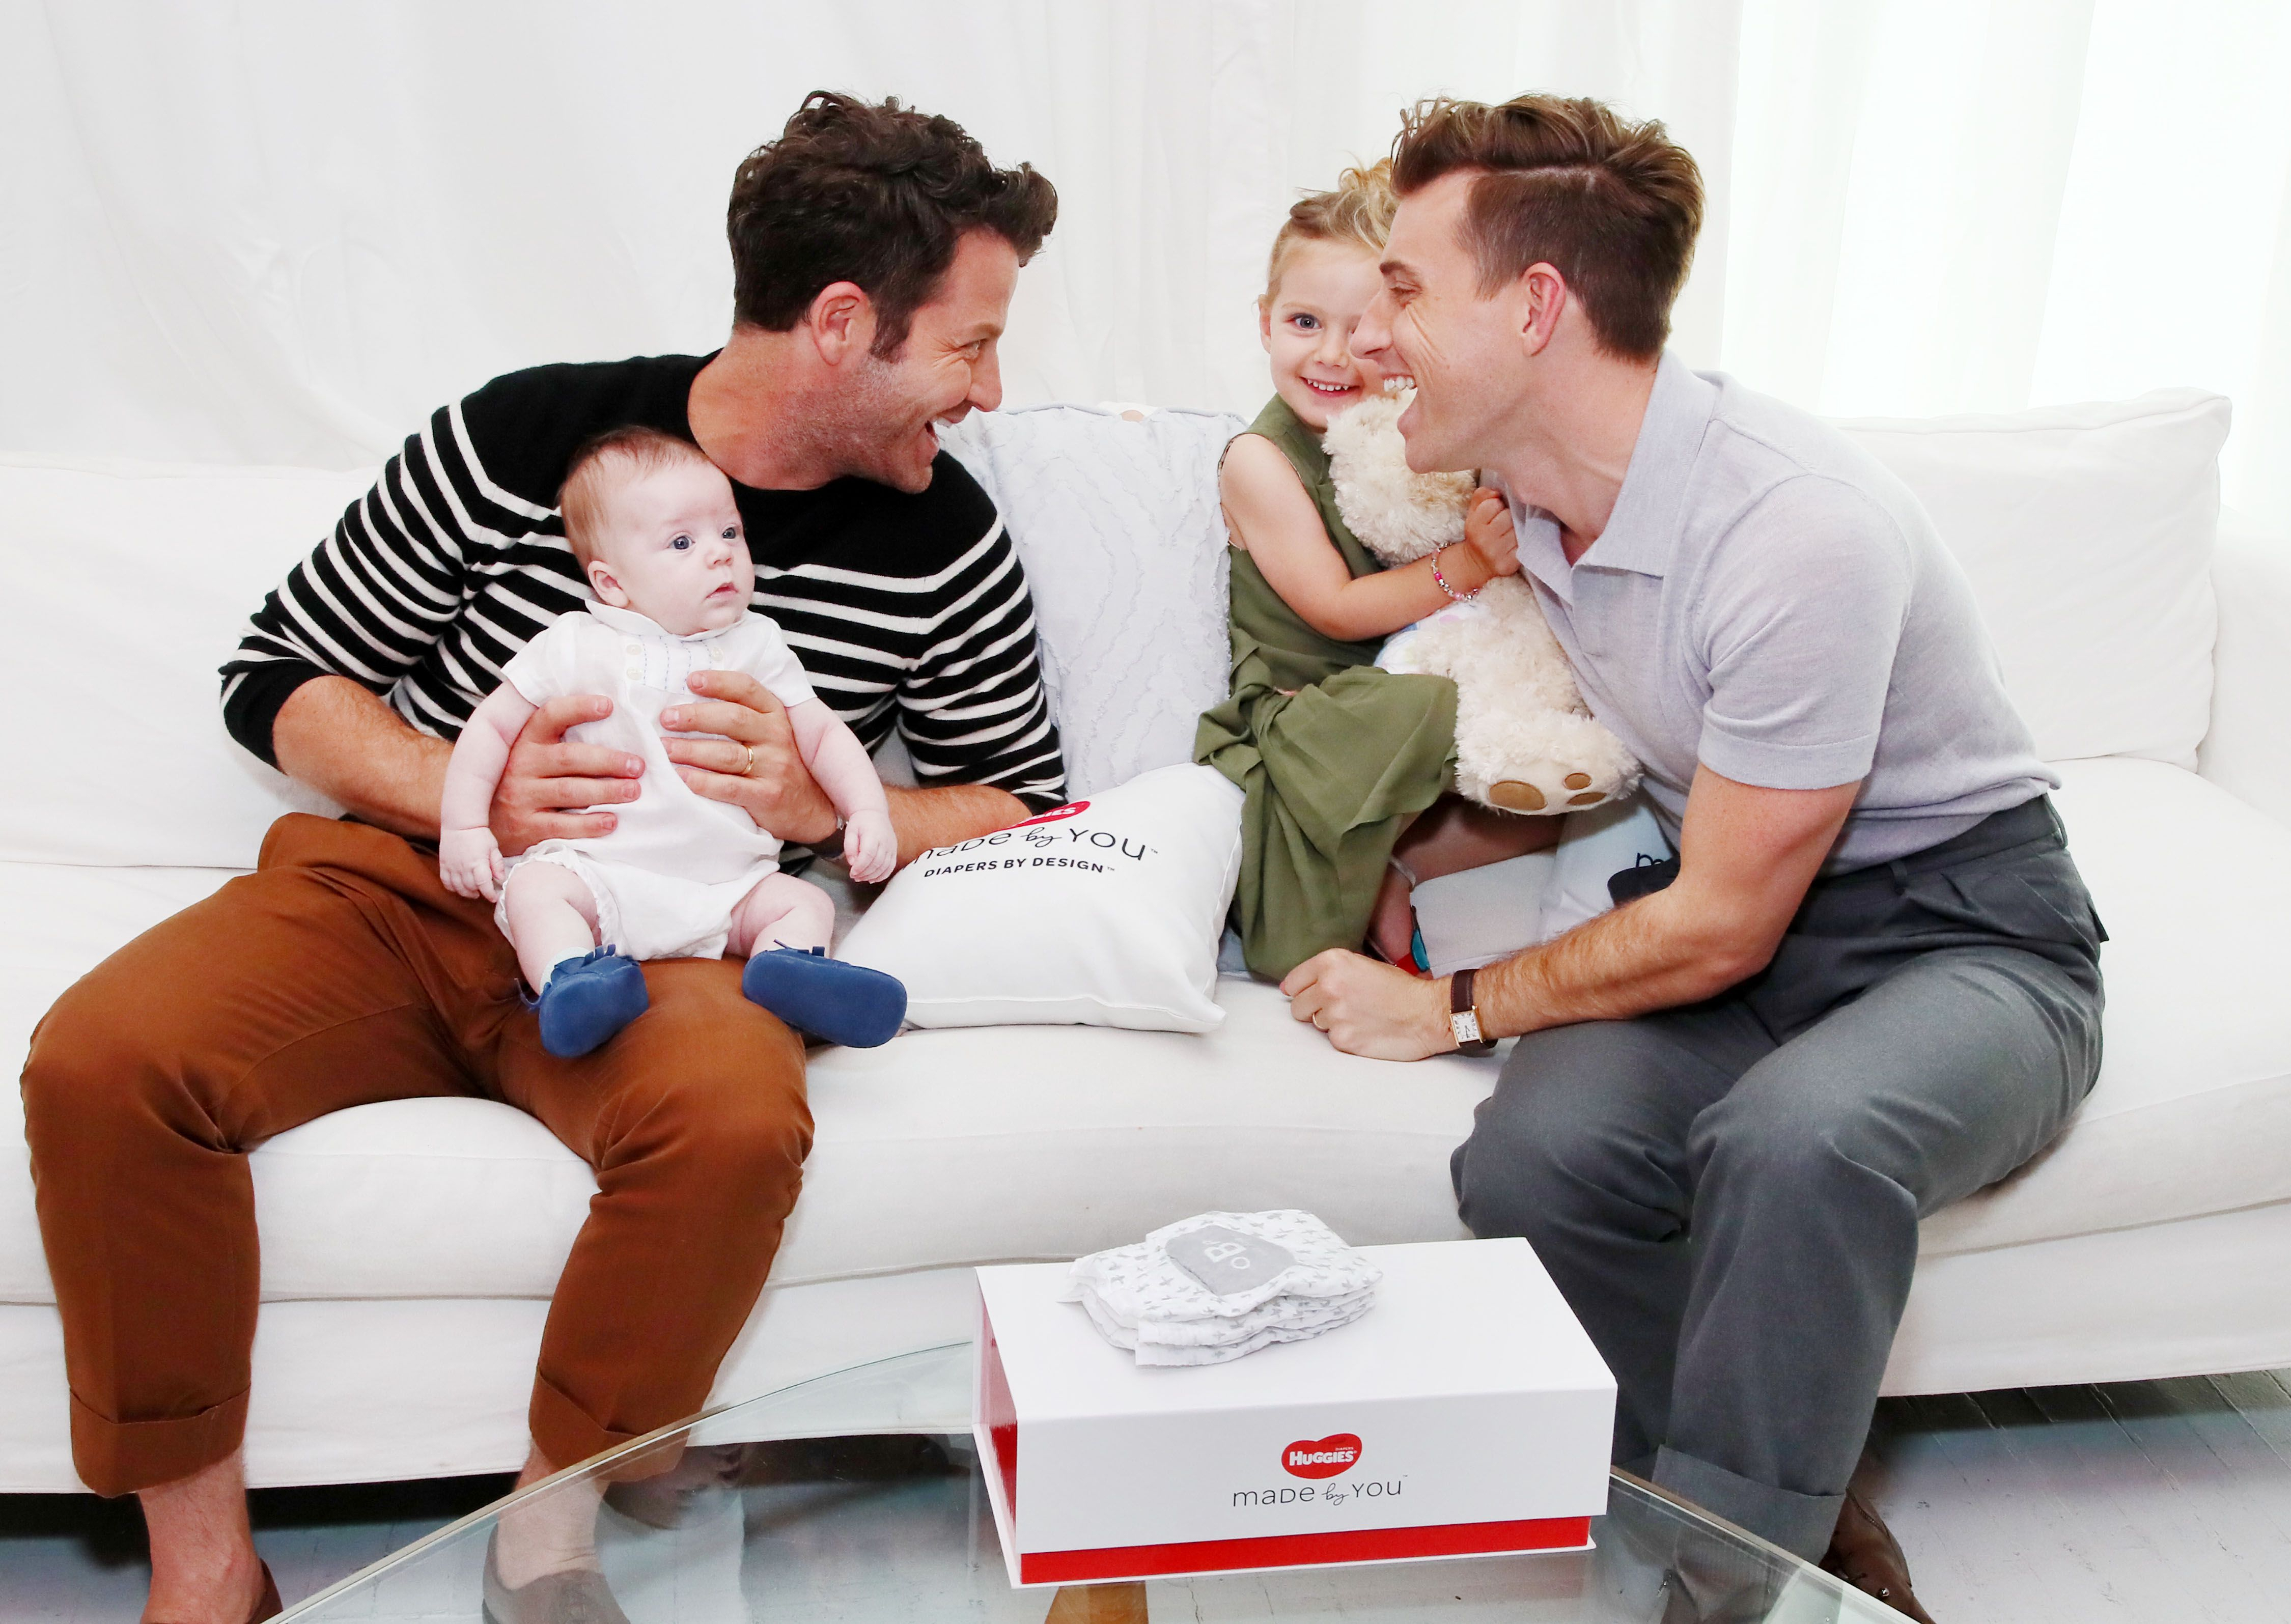 Best Of Nate Berkus And Jeremiah Brent's New Upholstery Collection Inside Ames Arm Sofa Chairs By Nate Berkus And Jeremiah Brent (Image 4 of 20)